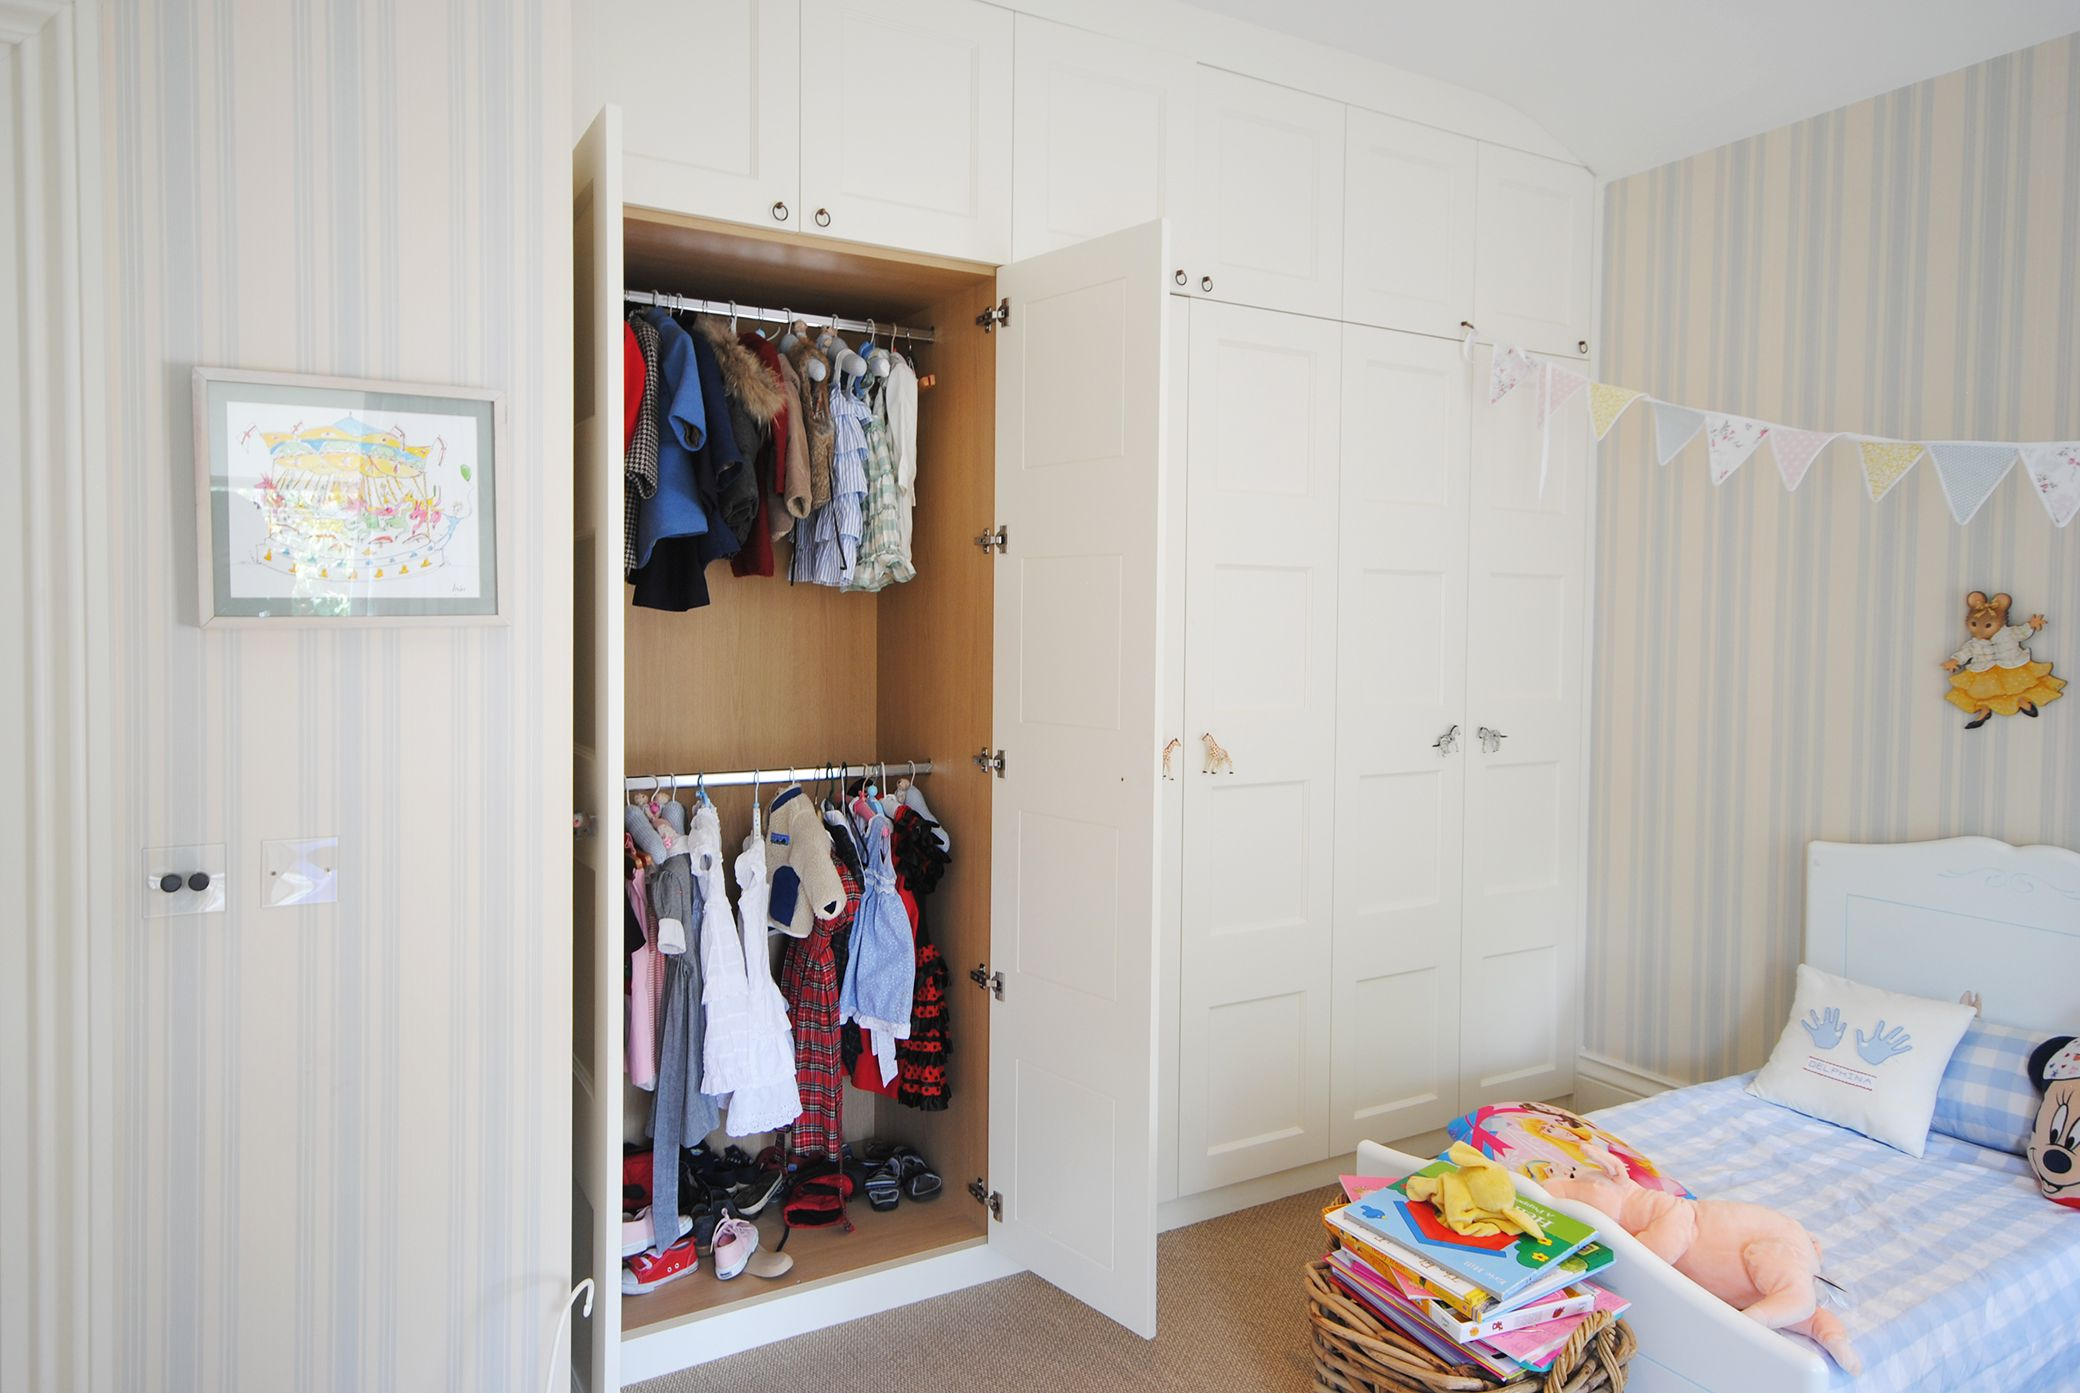 A Unique Children S Wardrobe Designed And Crafted By Creative Woodwork In London Www Creativew Made To Measure Wardrobes Childrens Wardrobes Bespoke Wardrobe